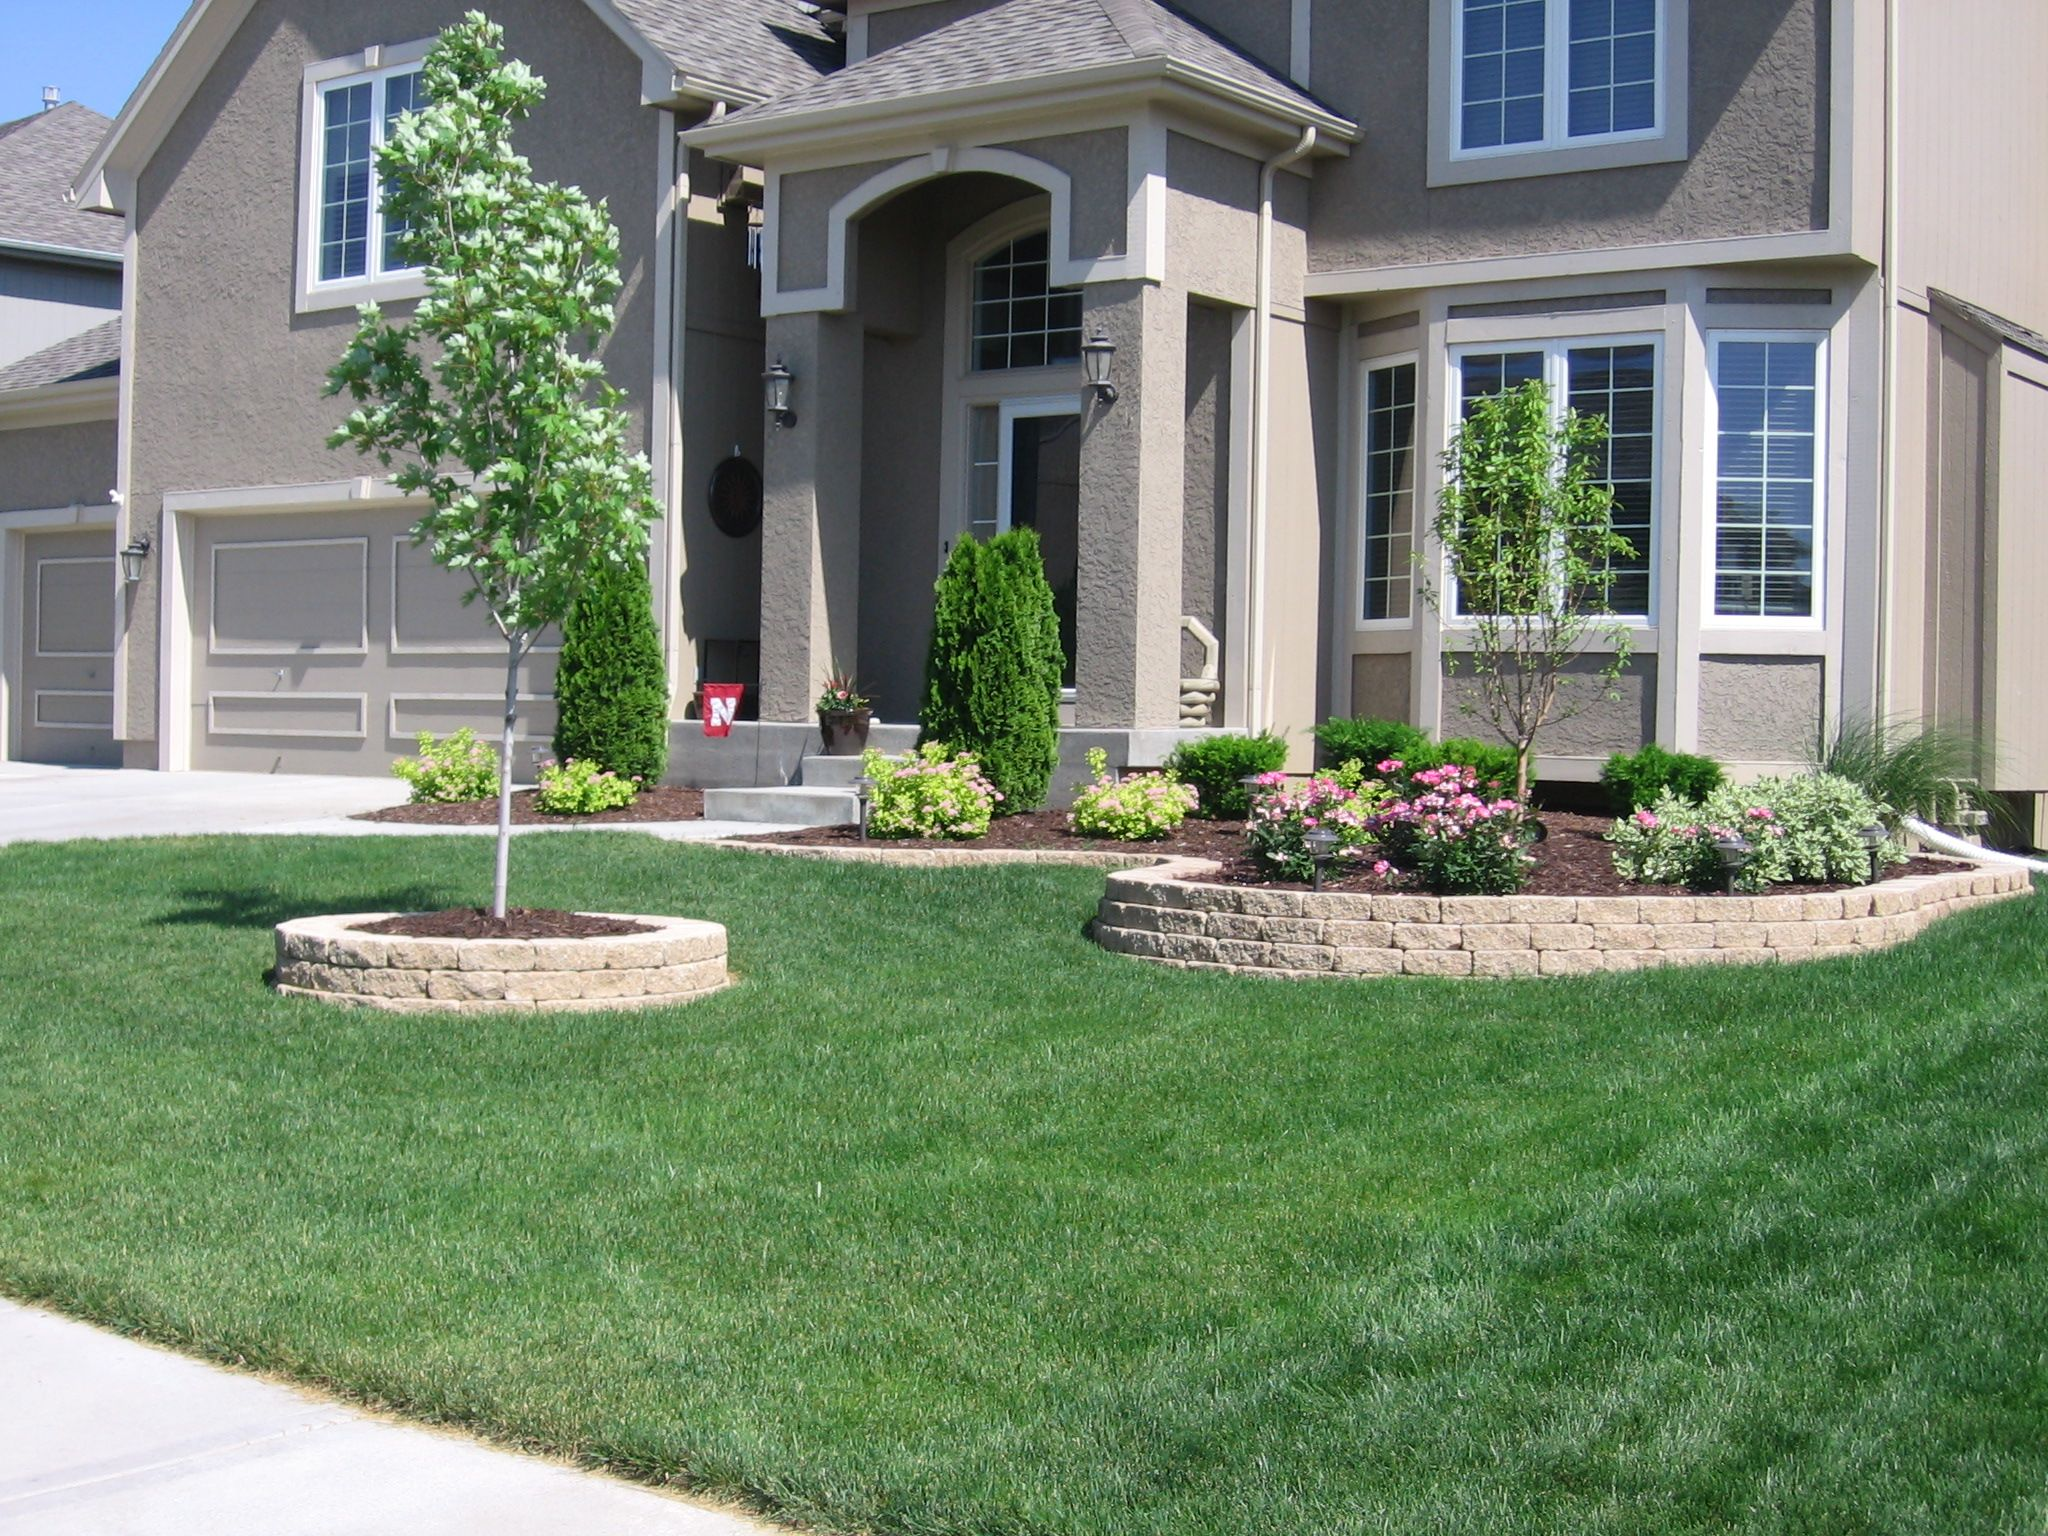 landscaping ideas for front of house with porch be prepared to follow these easy steps